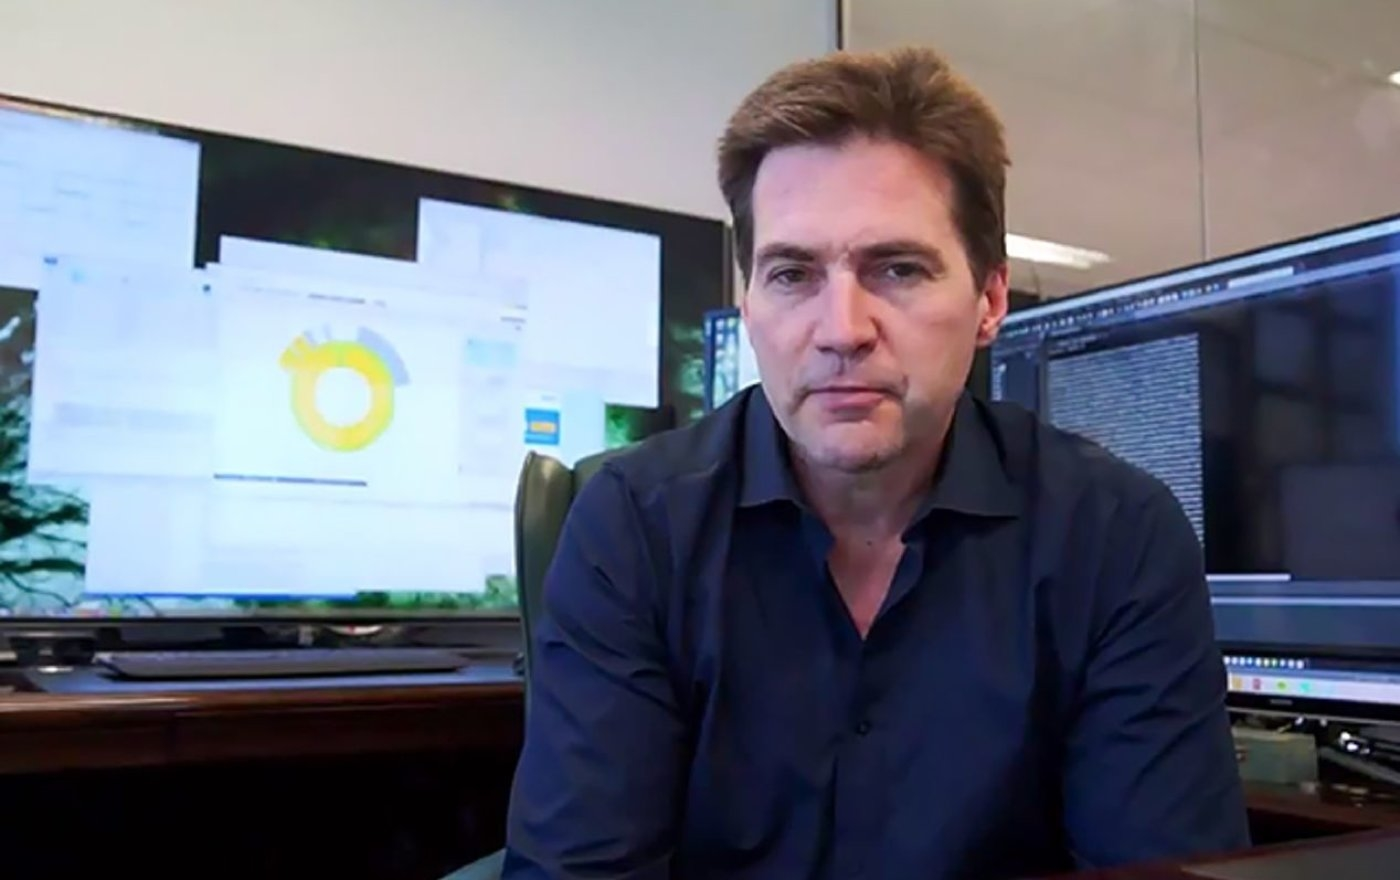 Craig Wright seized up to 1.1 million bitcoin